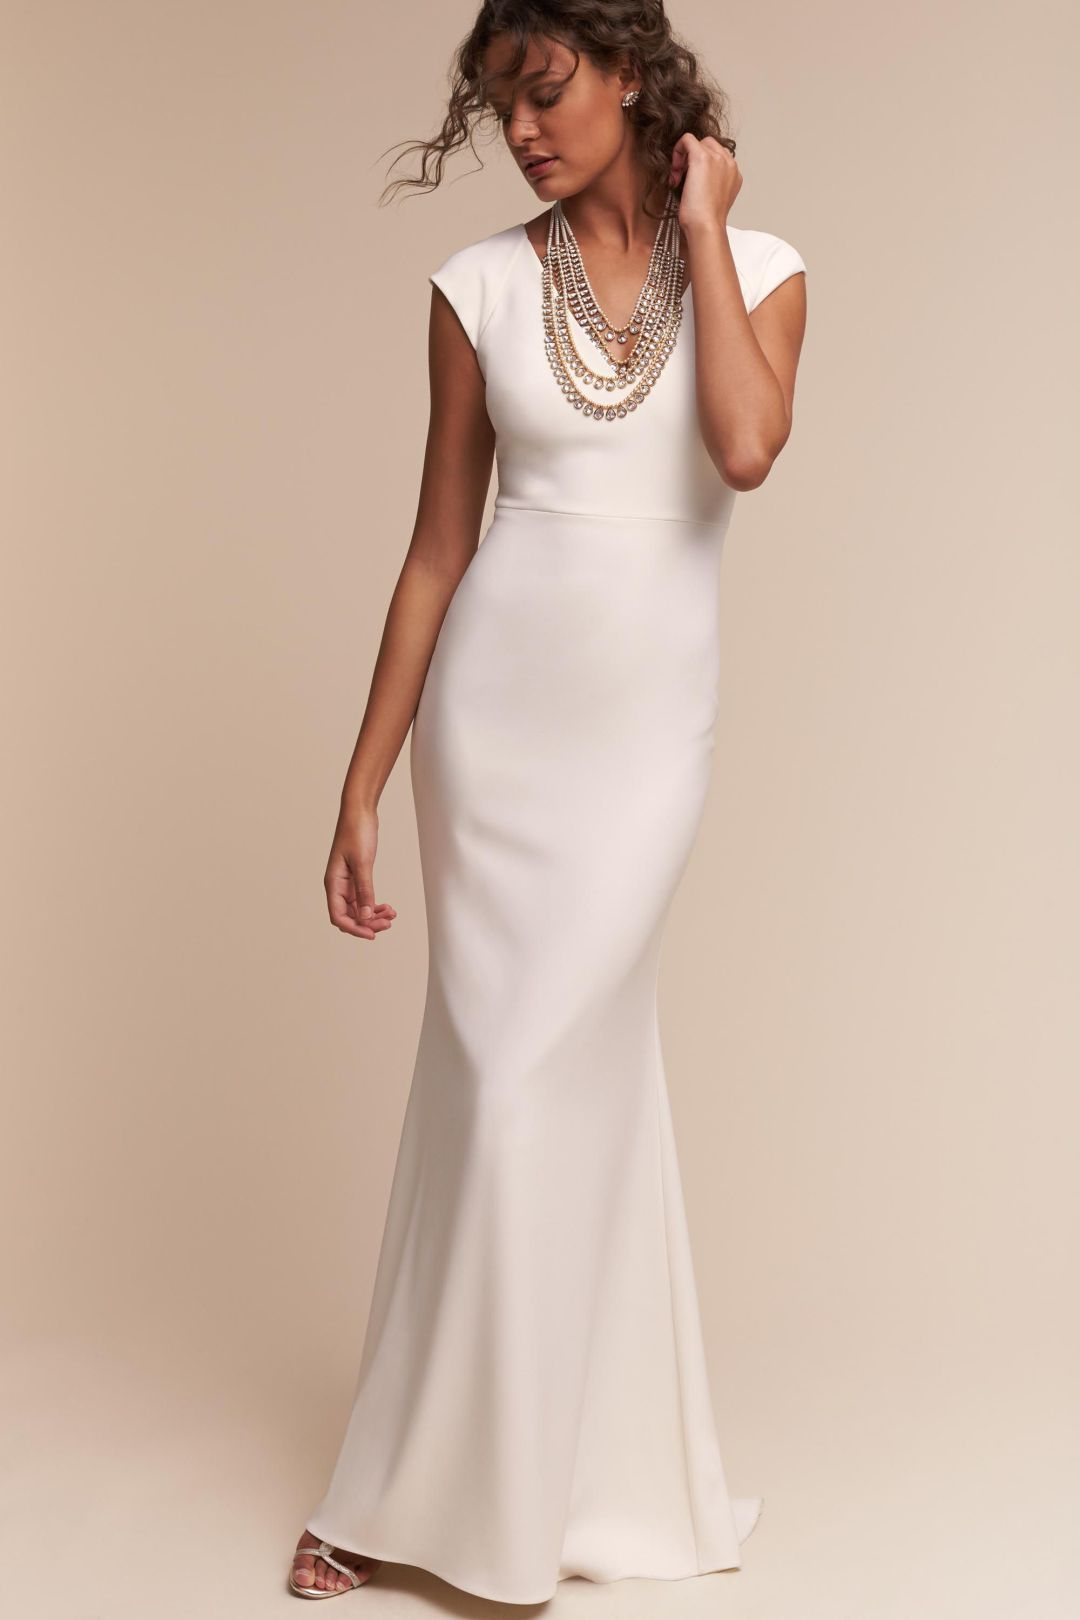 White cocktail dress for wedding  Pin by The Minimalist Wedding on Minimalist Wedding Dresses